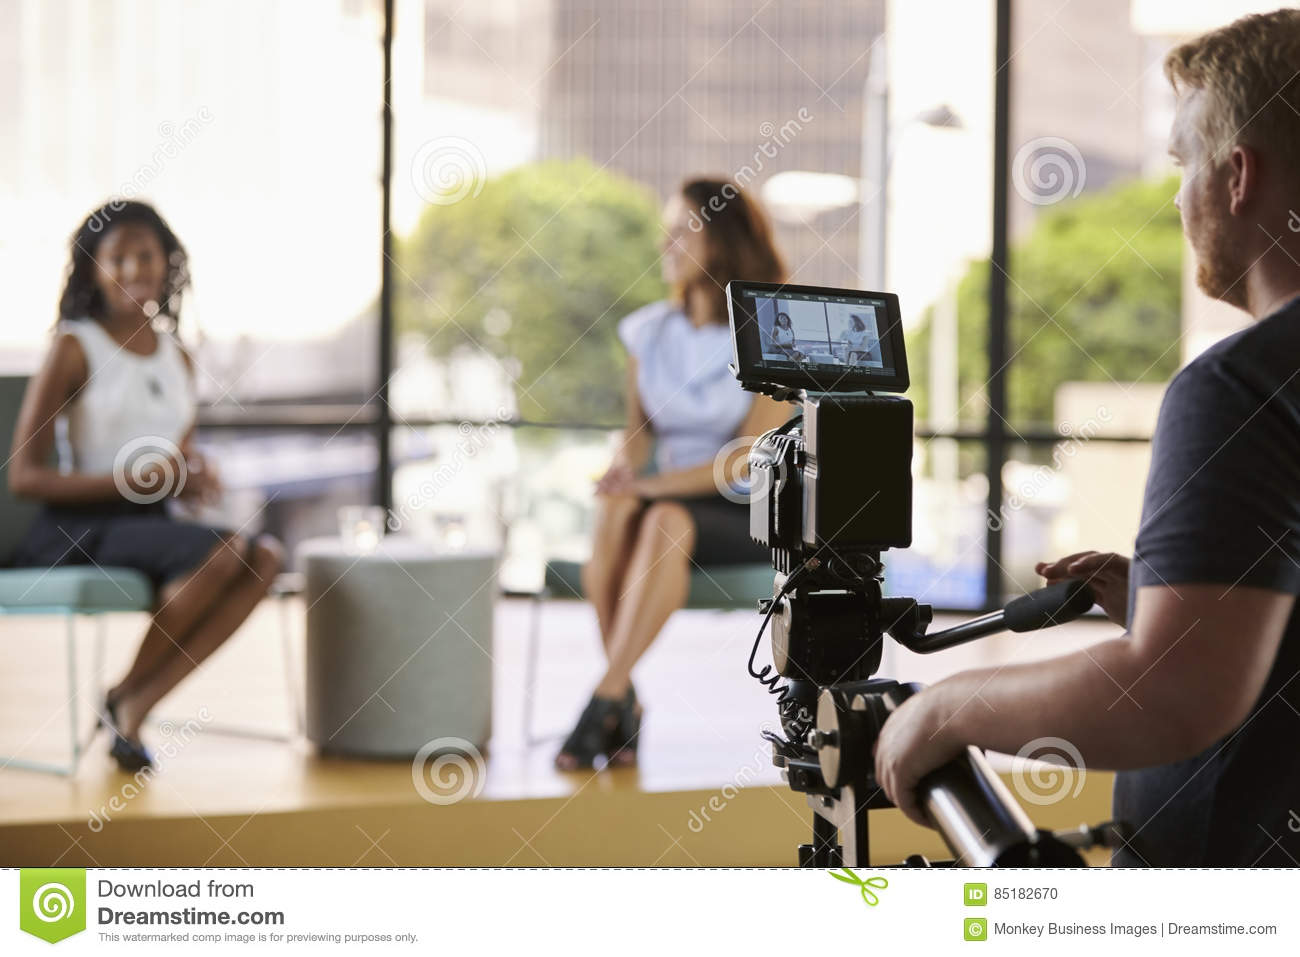 Two young women on set for TV interview, focus on foreground